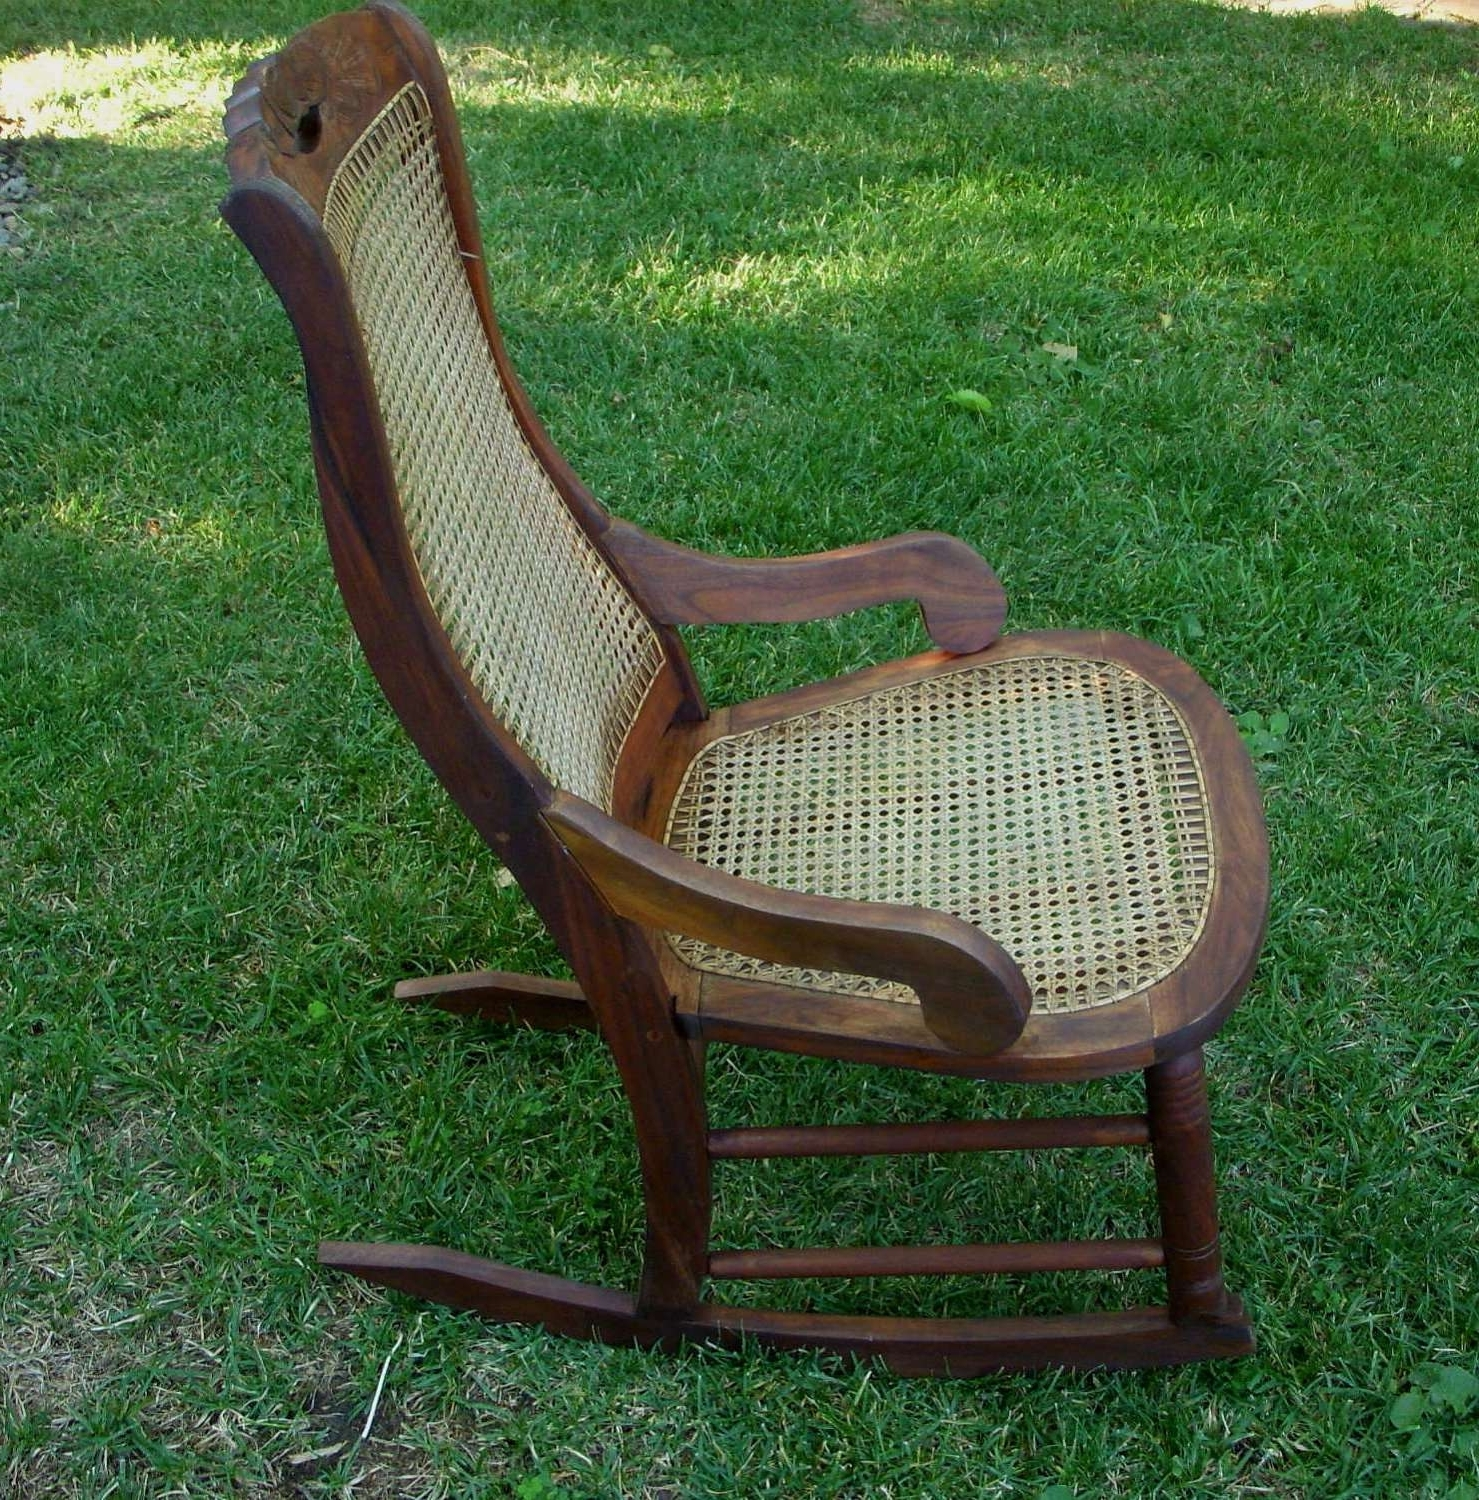 Chair Designs Gallery Pertaining To Current Antique Wicker Rocking Chairs (View 12 of 15)